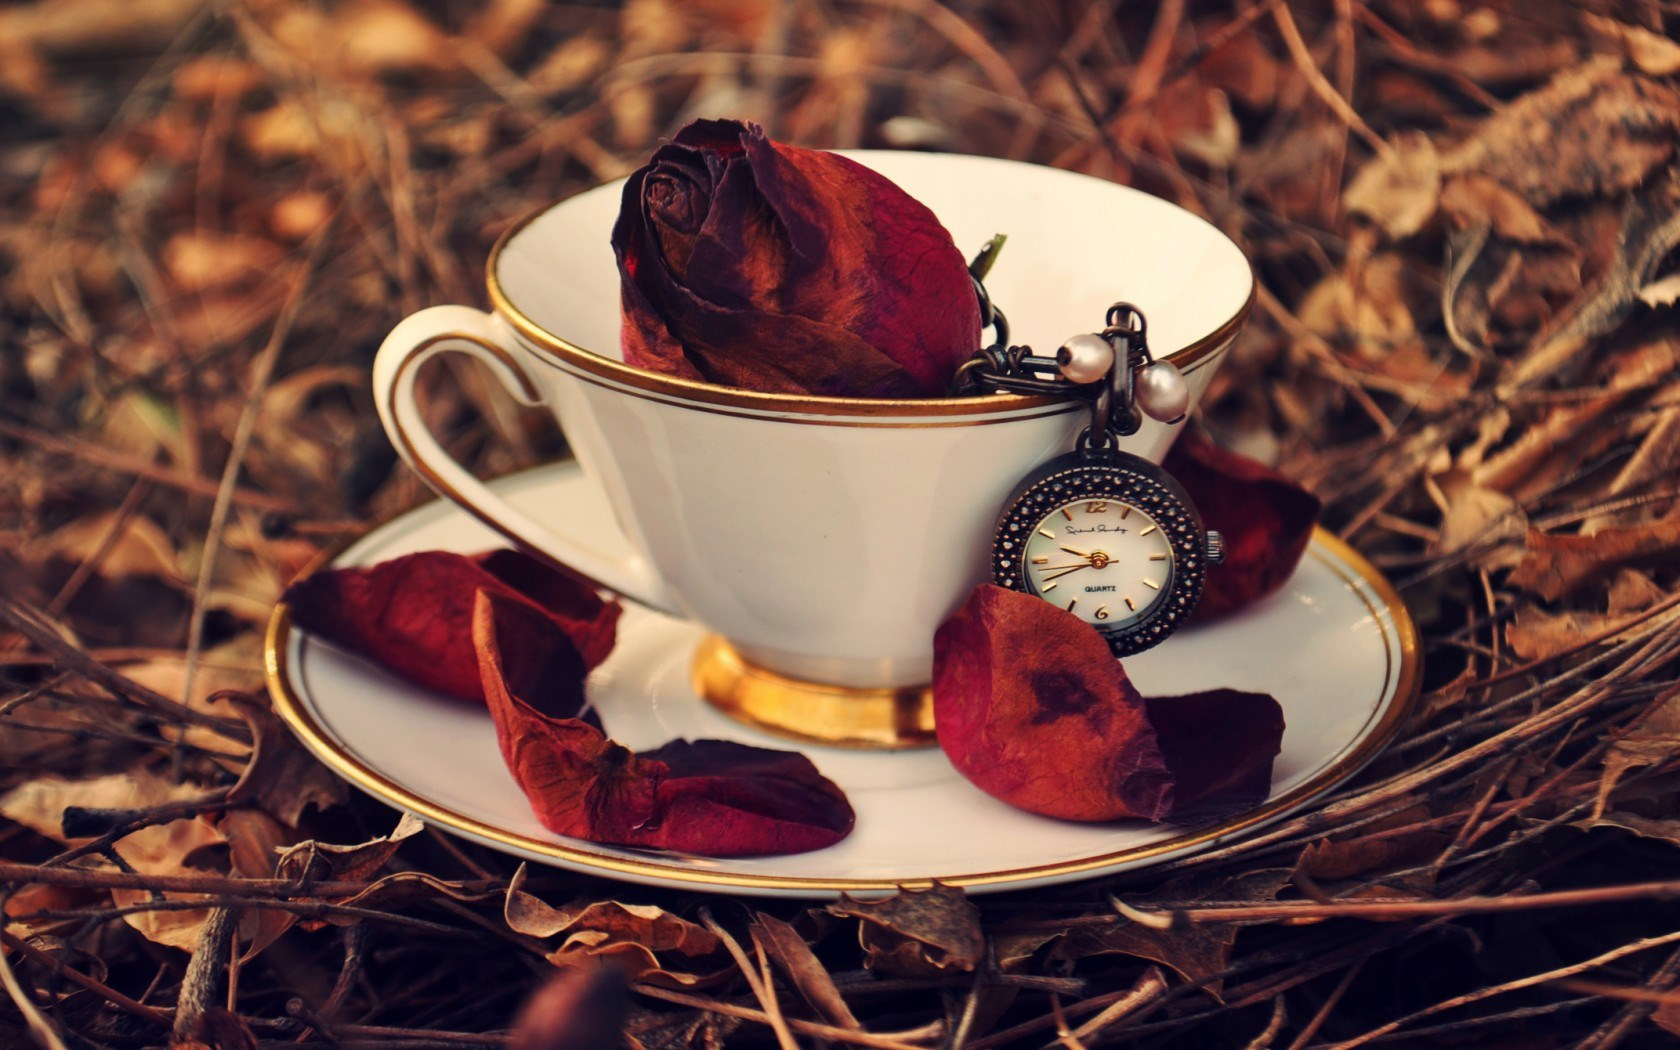 Cup Rose Red Petals Clock Leaves Autumn